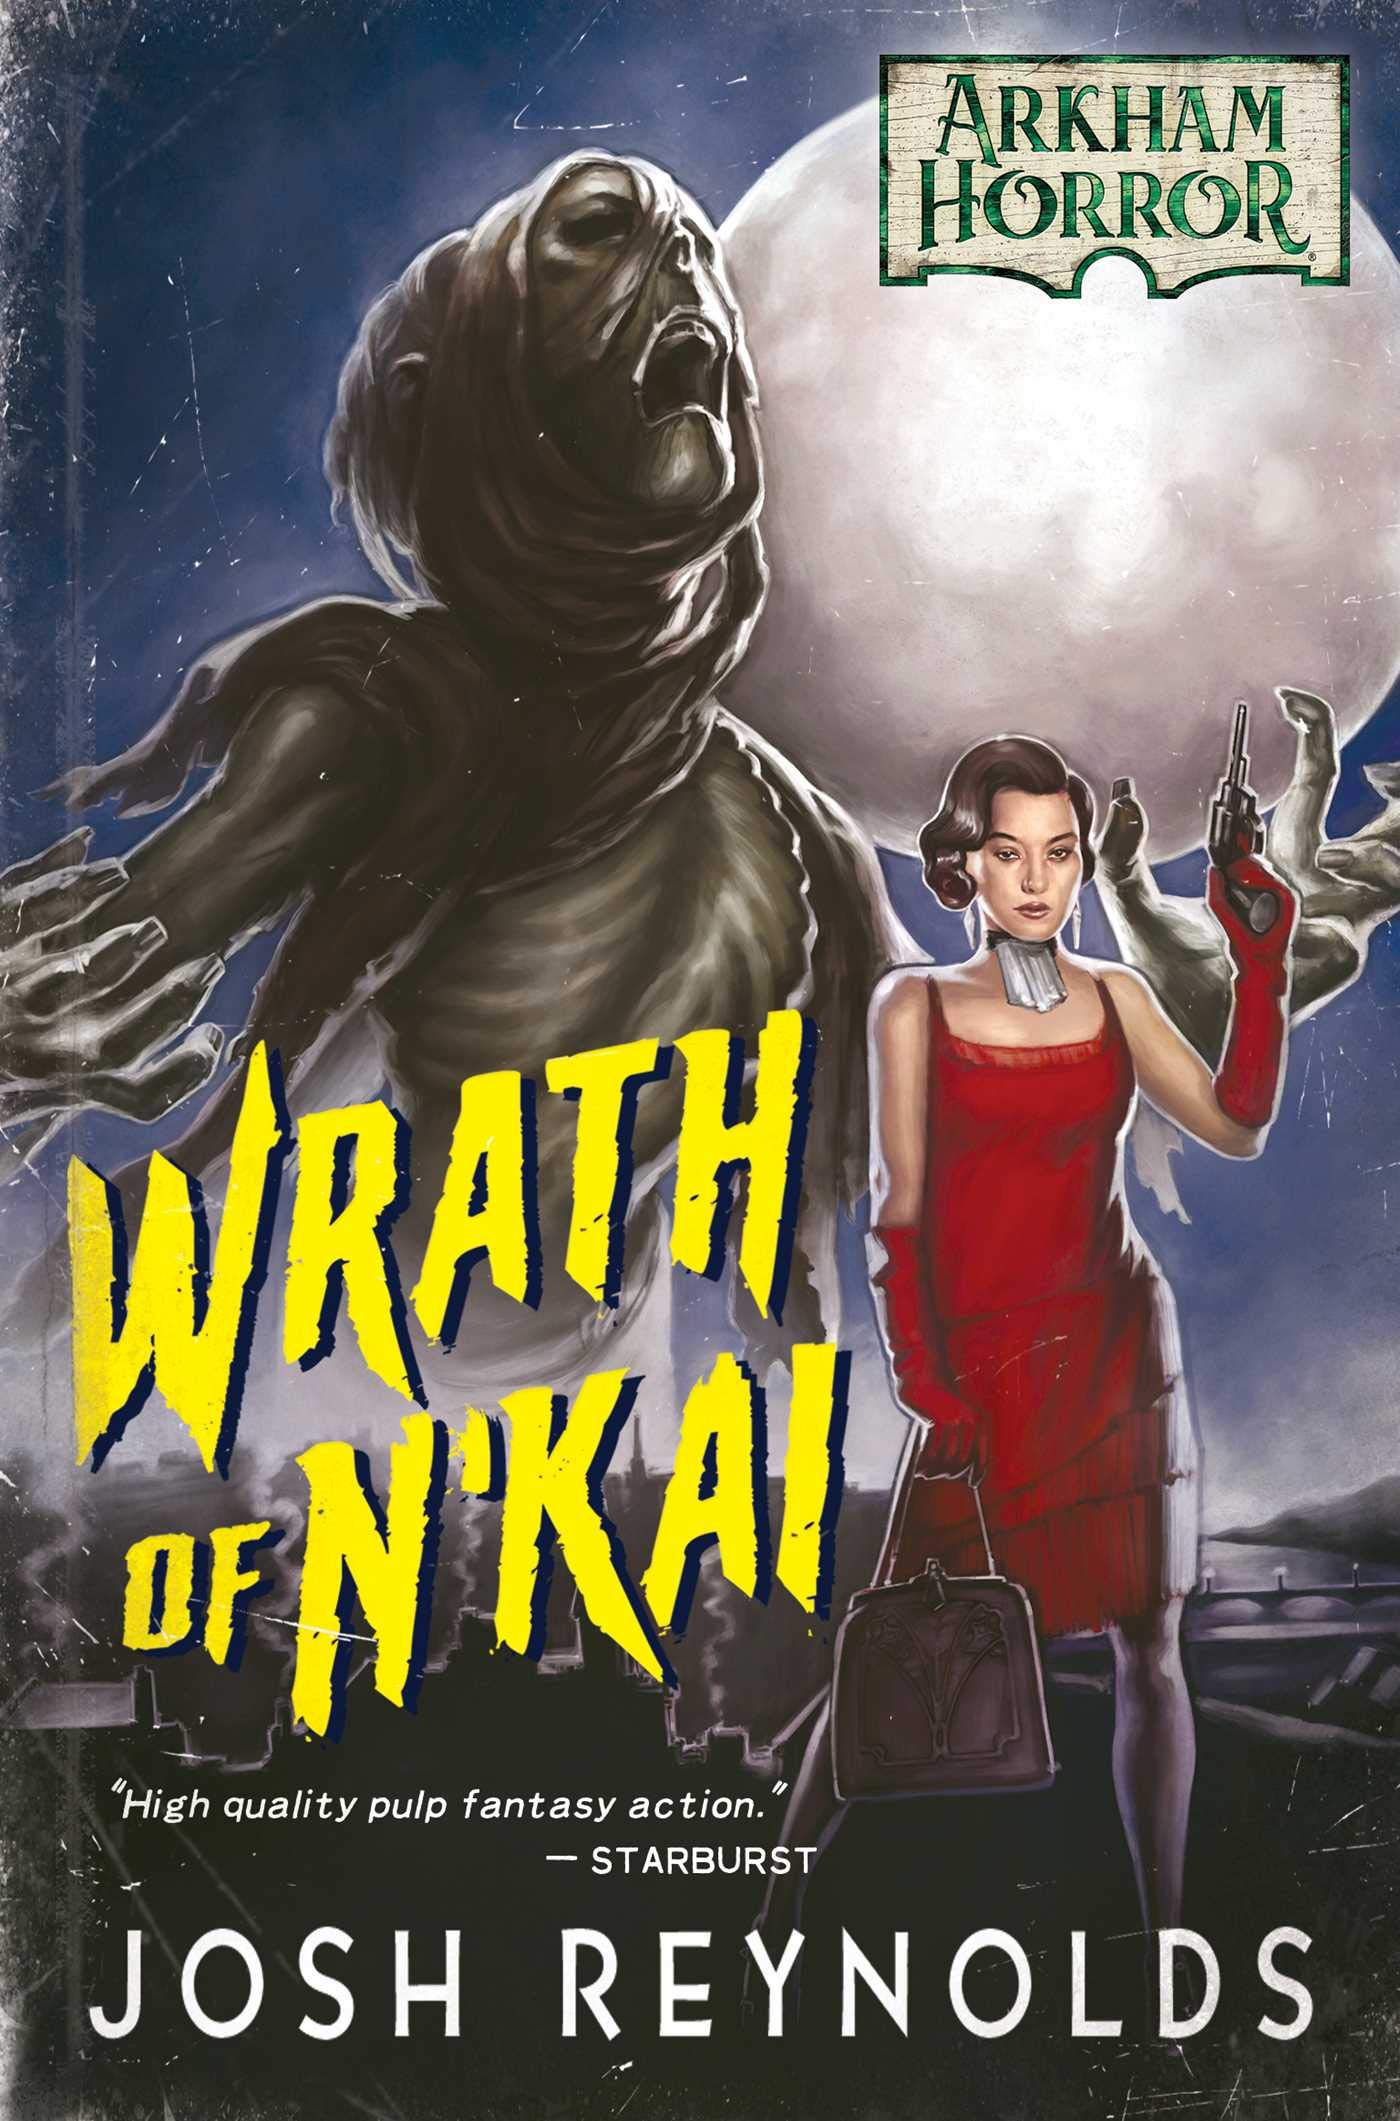 Wrath of N'kai: An Arkham Horror Novel: Amazon.co.uk: Reynolds ...